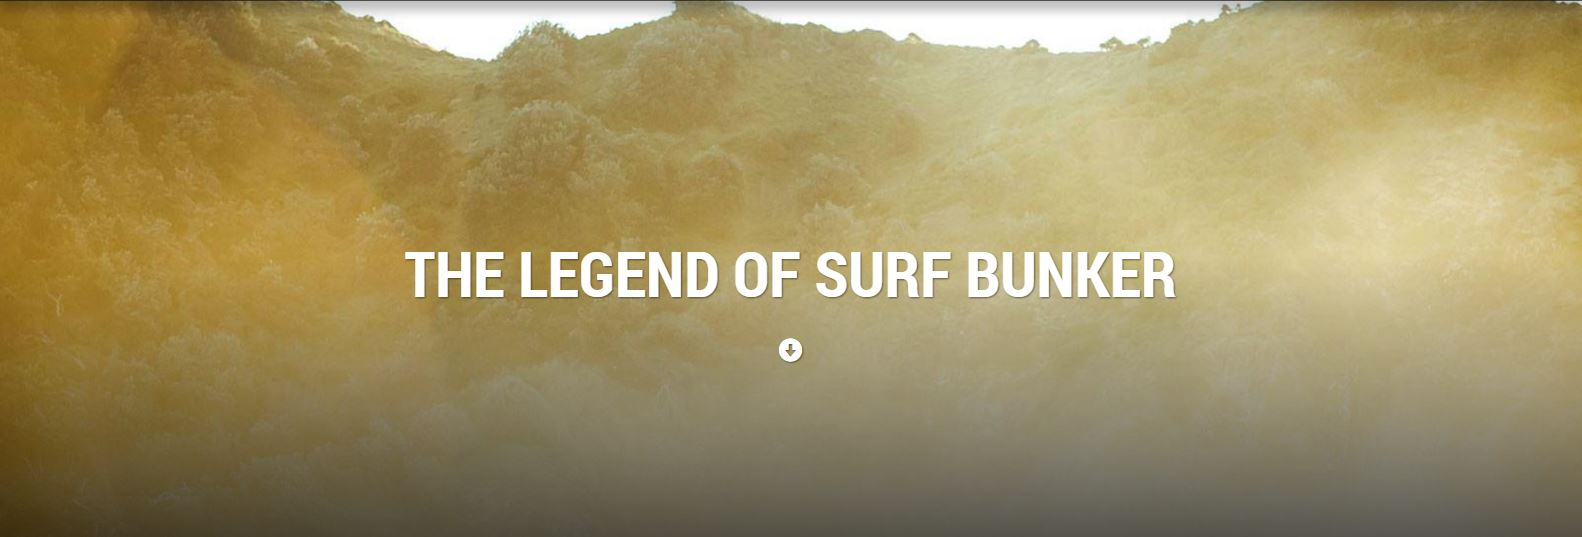 The Legend of surf bunker